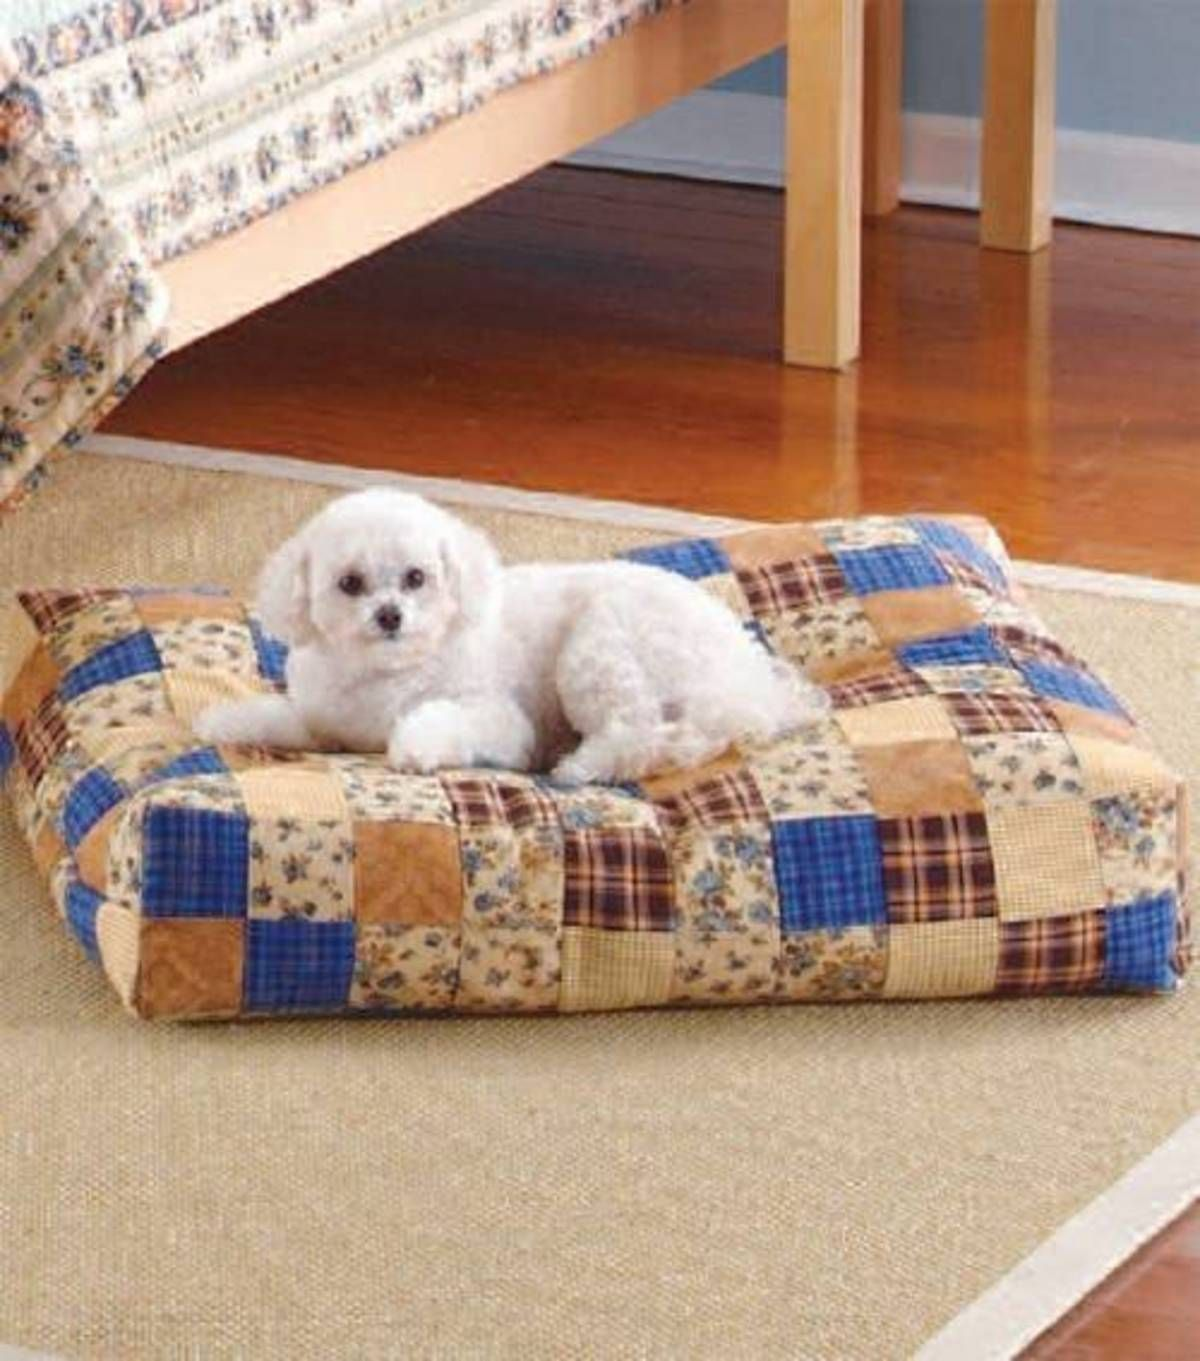 How to Make a Bed for Your Dog Using Fleece or Scrap